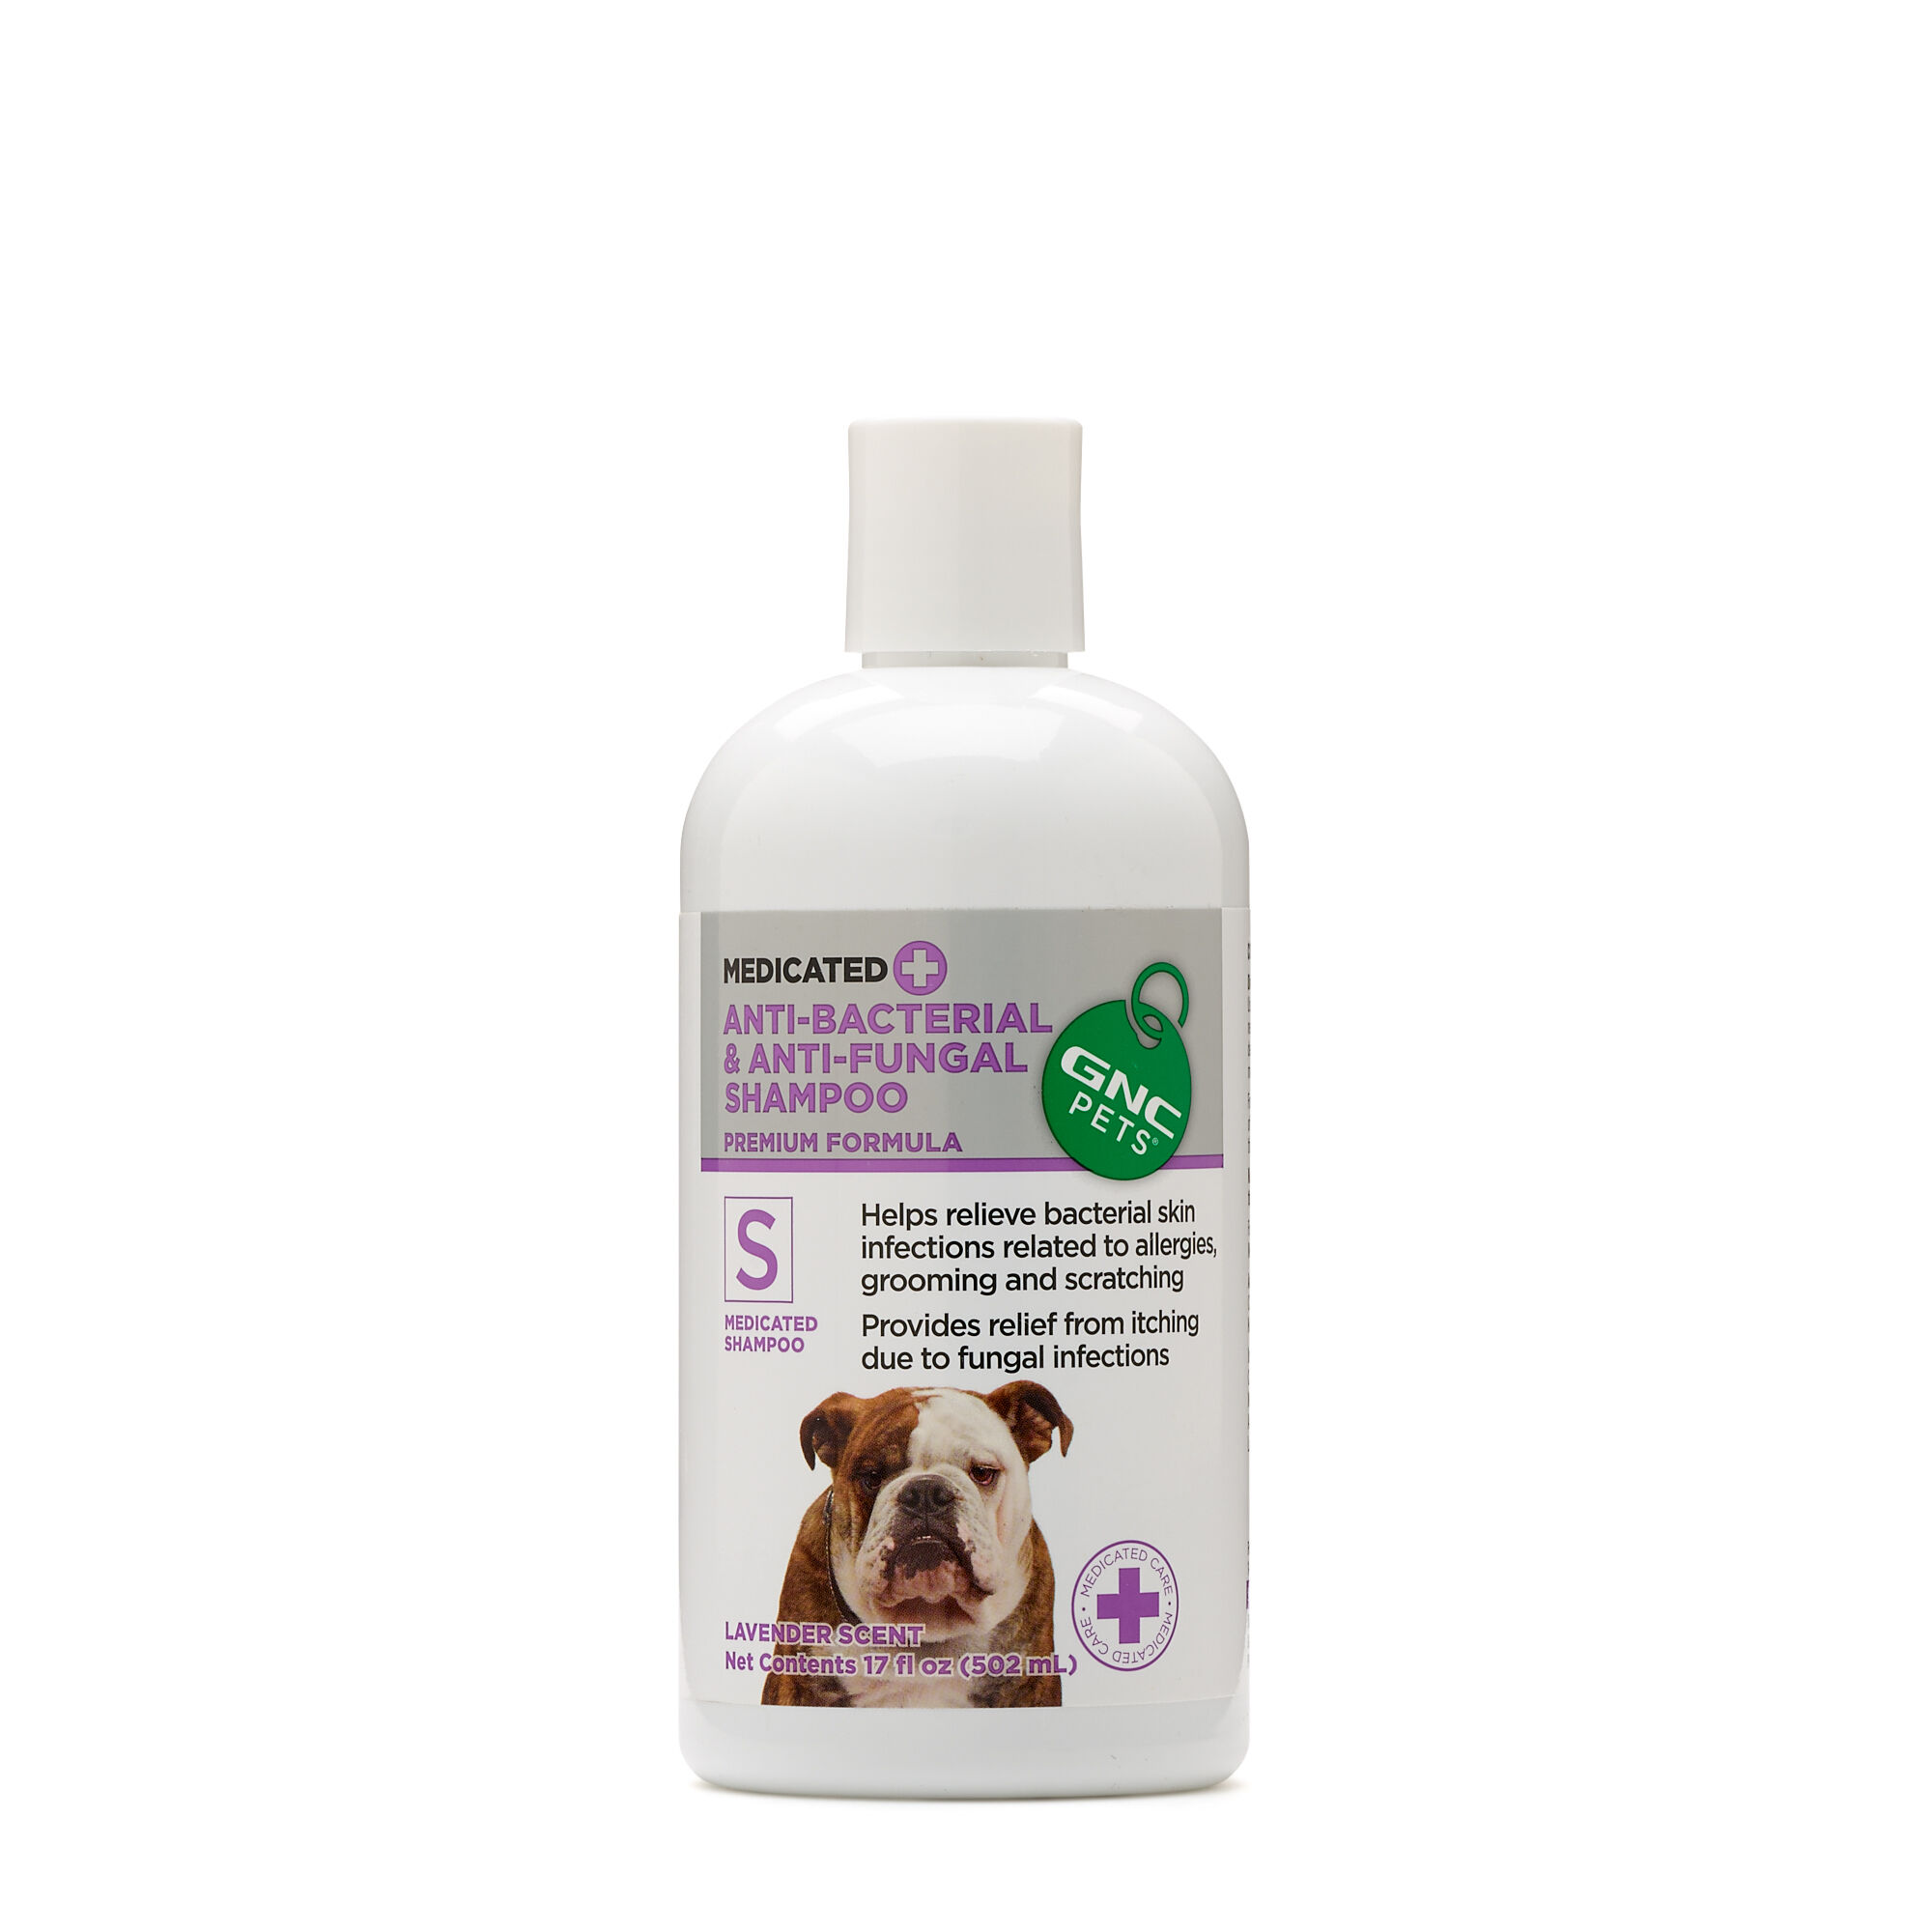 Gnc Pets Medicated Anti Bacterial Fungal Shampoo Lavender Scent